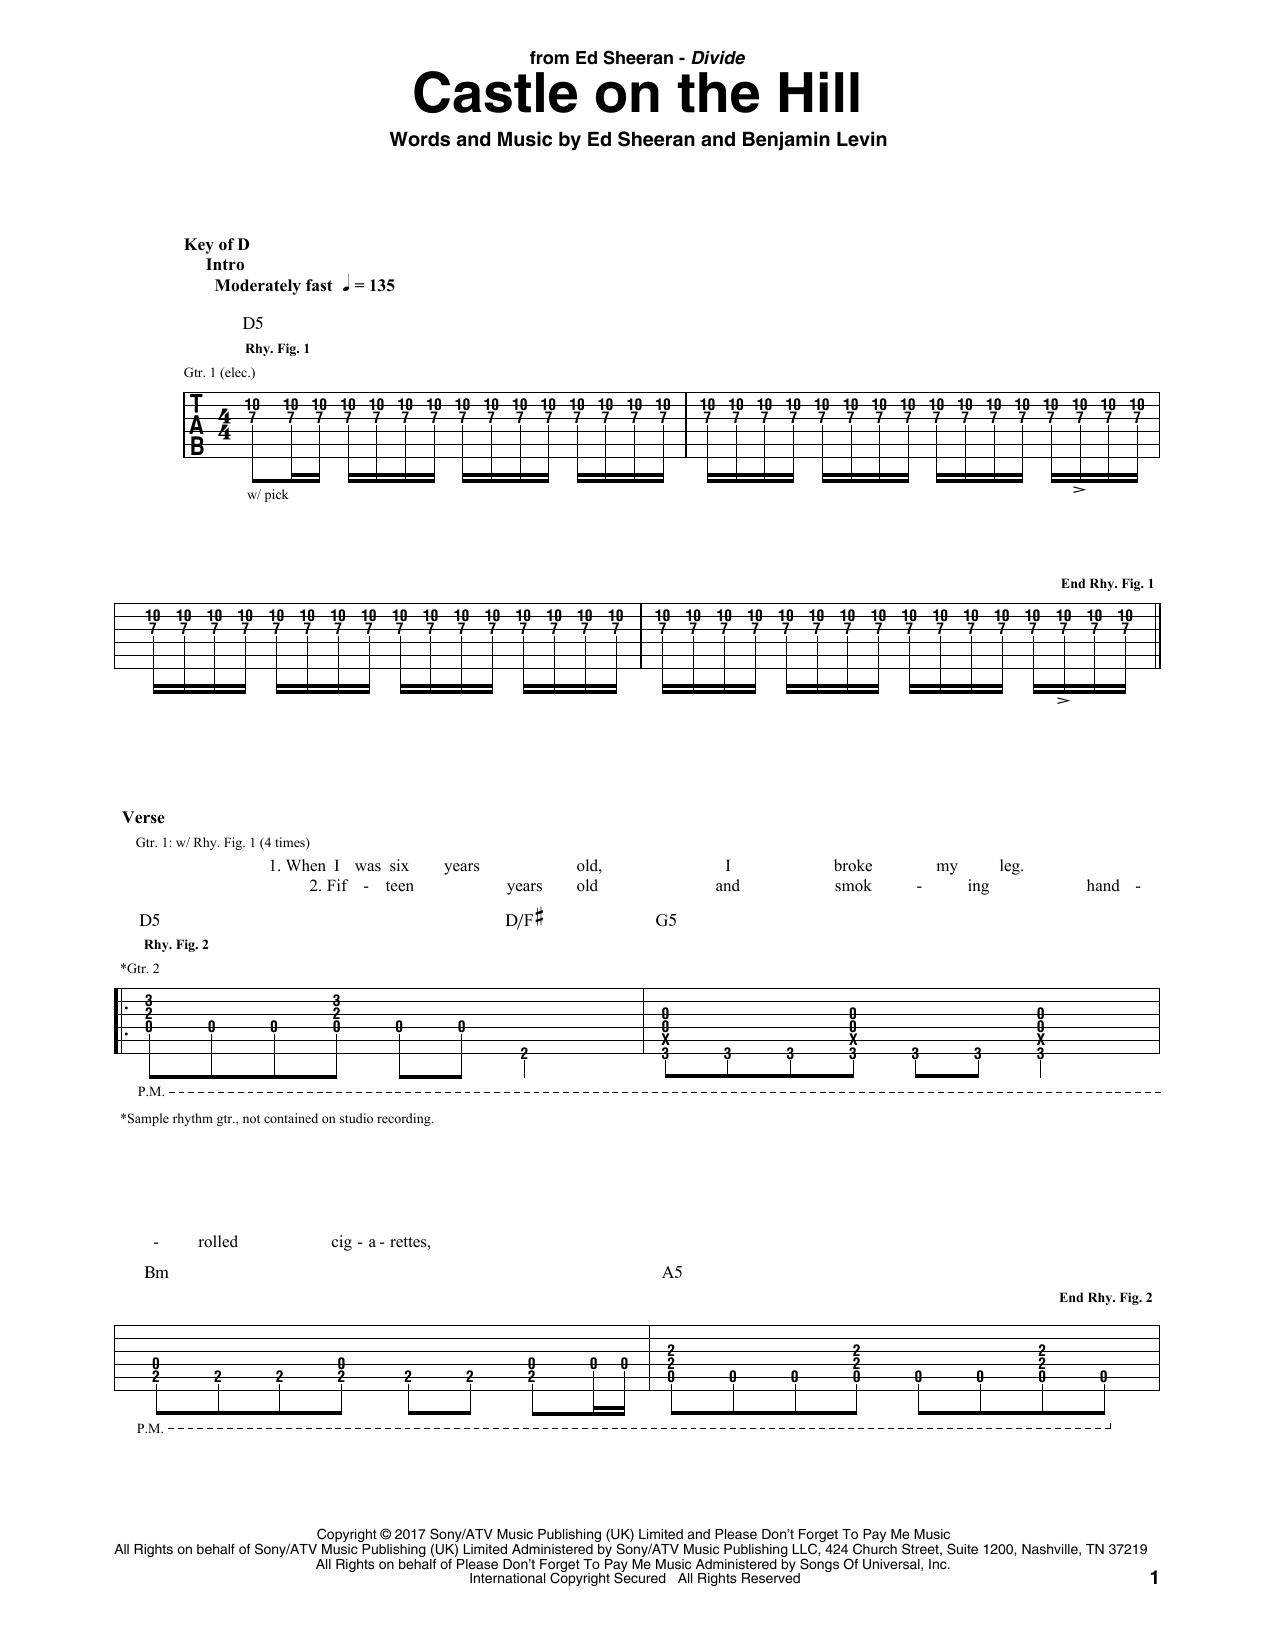 Sheet Music Digital Files To Print Licensed Ed Sheeran Digital